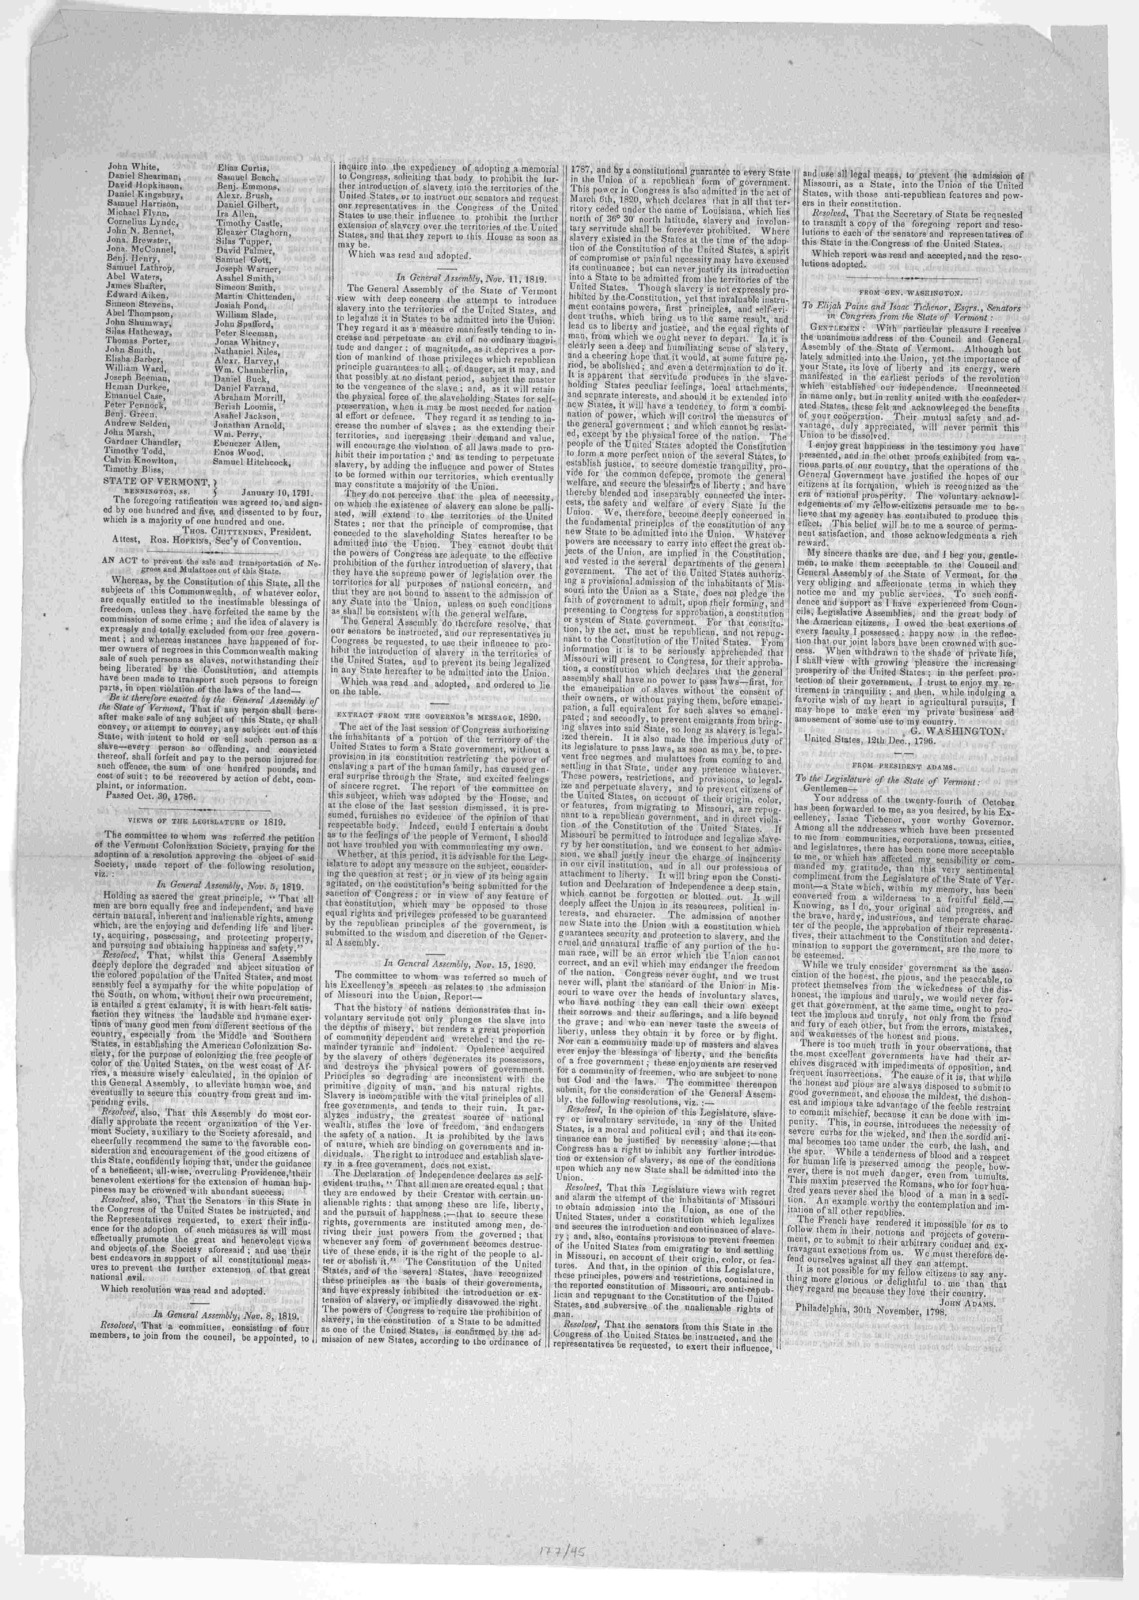 To the freemen of Vermont. Fellow-citizens. I have been frequently requested by gentlemen of different political parties to write out in full a history of the part that Vermont has taken in relation to slavery .... [18-].